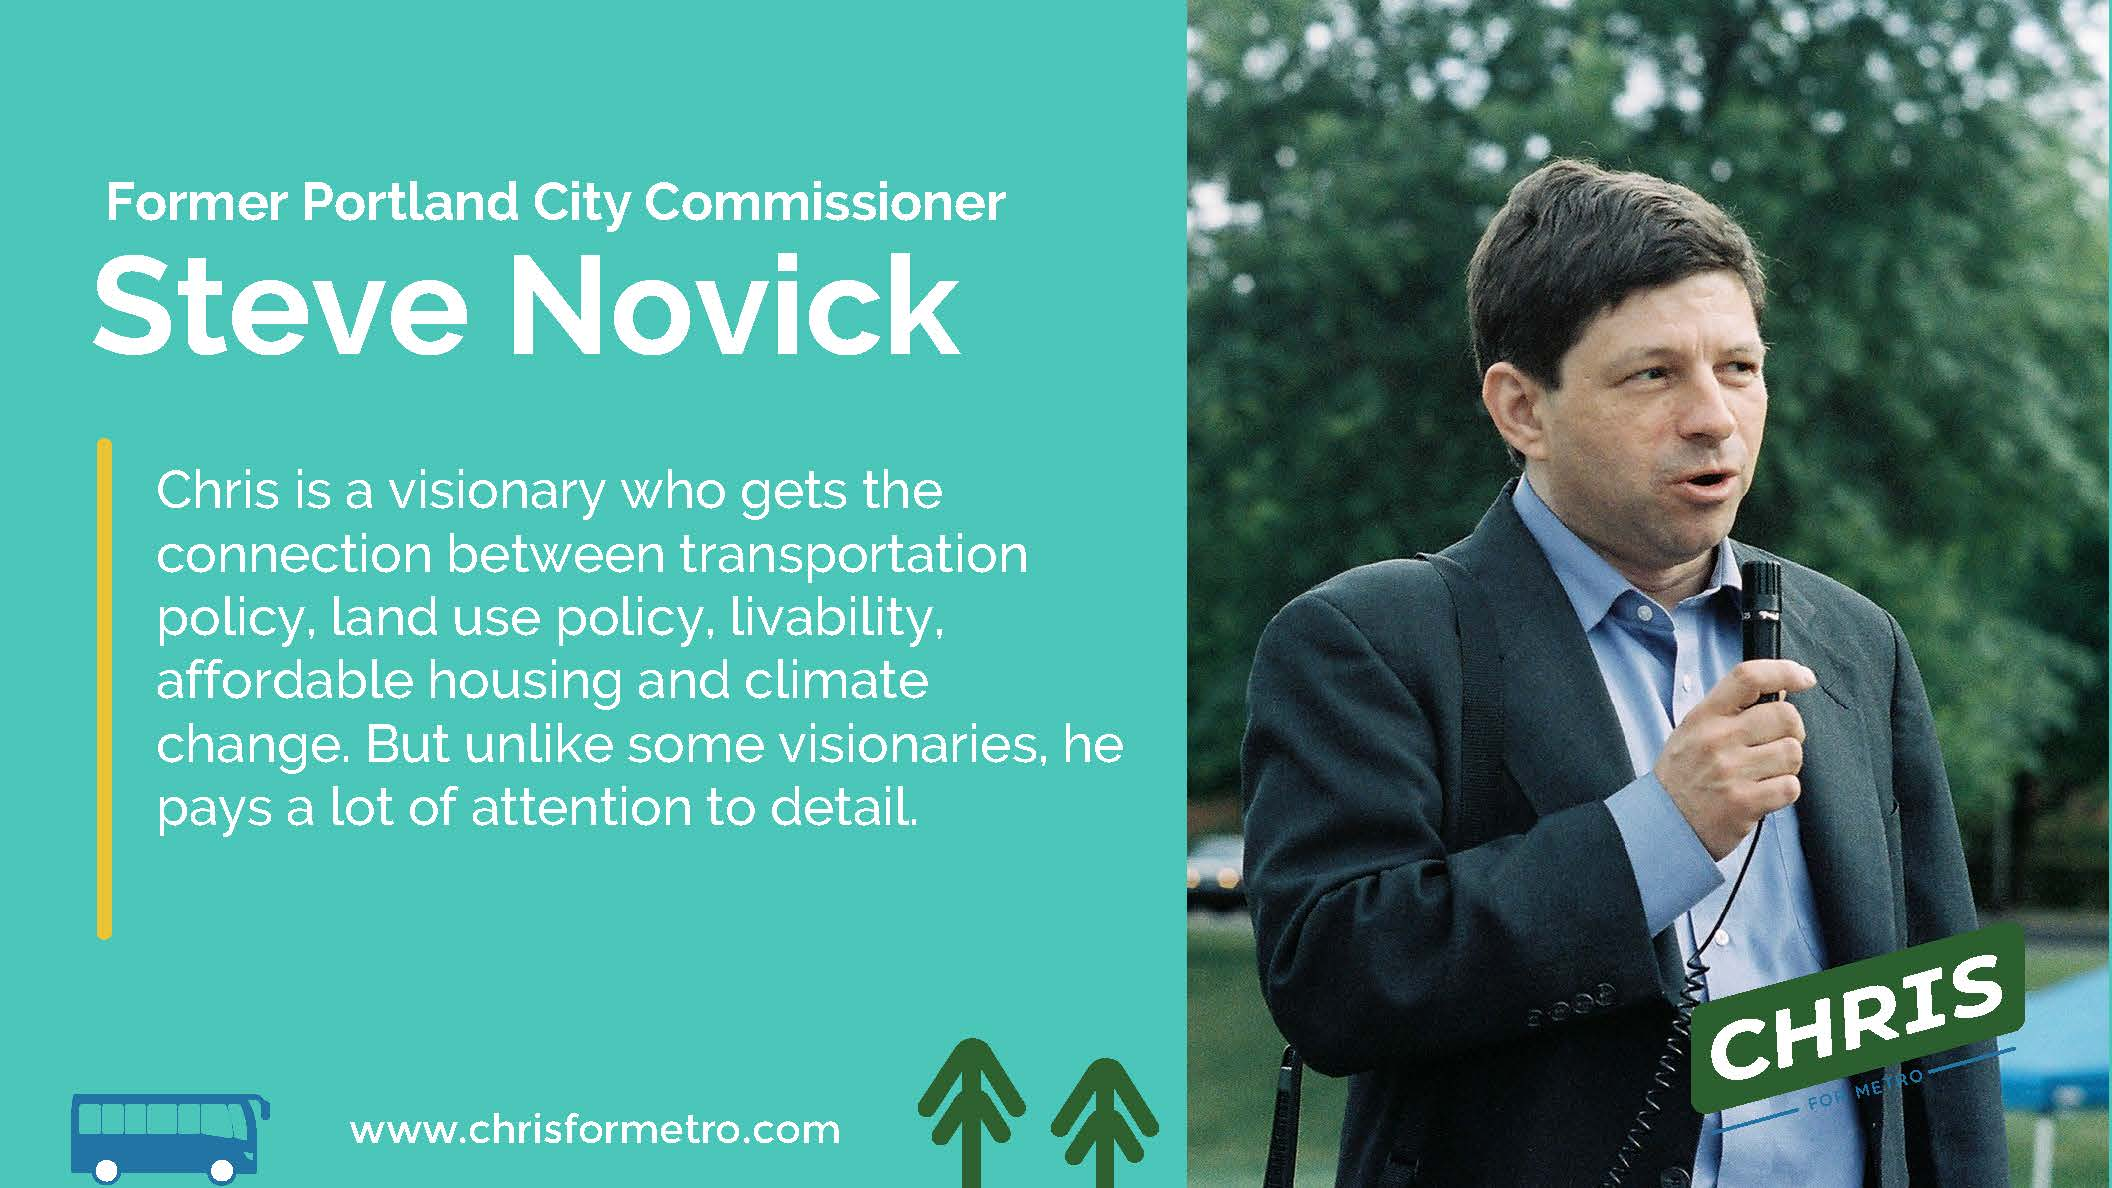 Steve Novick Endorsement